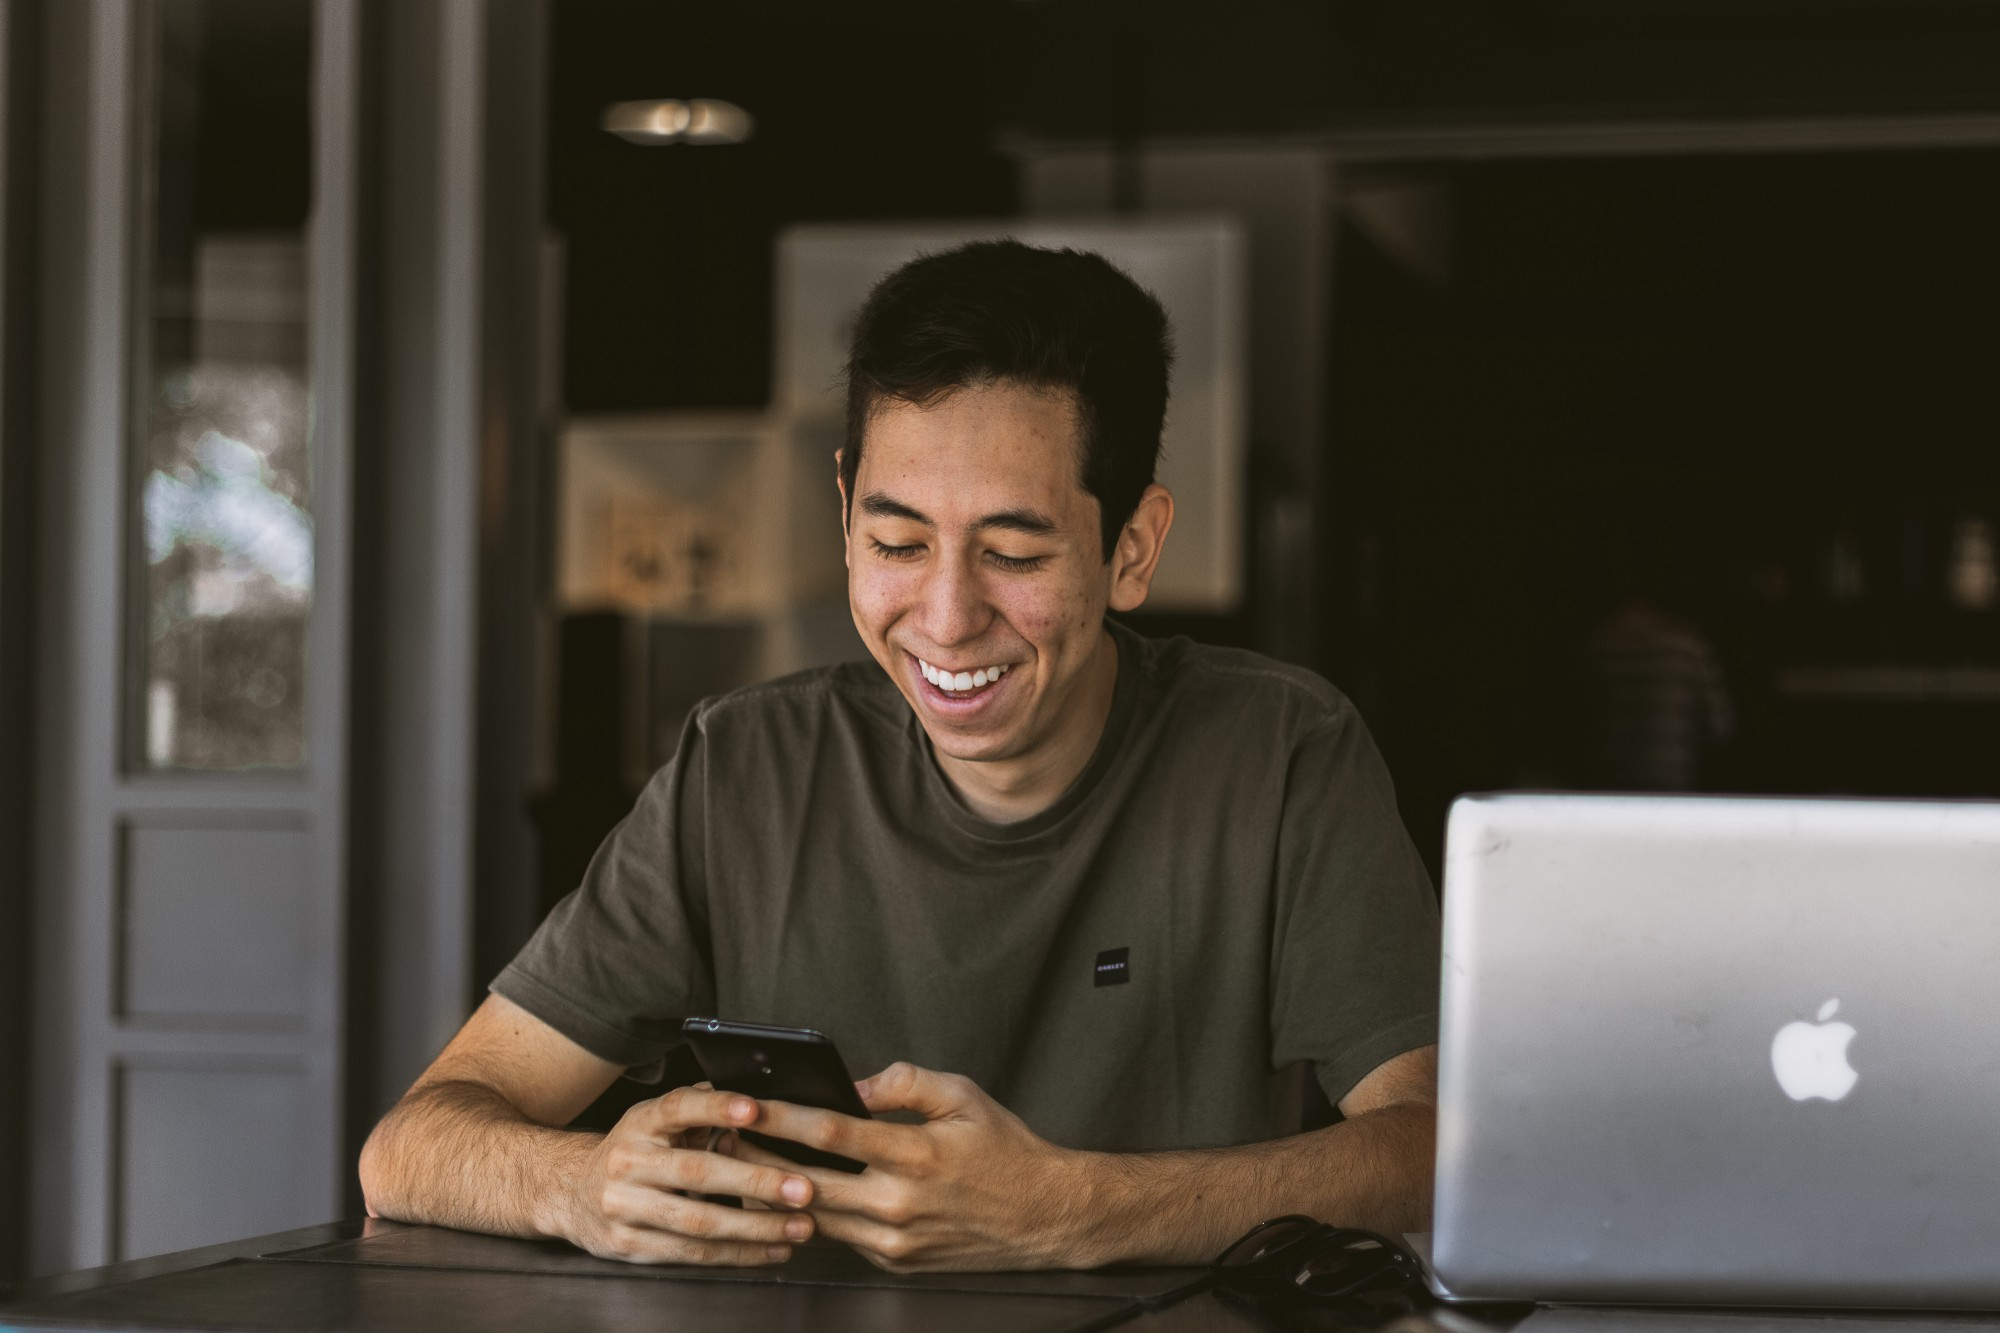 Man smiles whilst looking at his phone